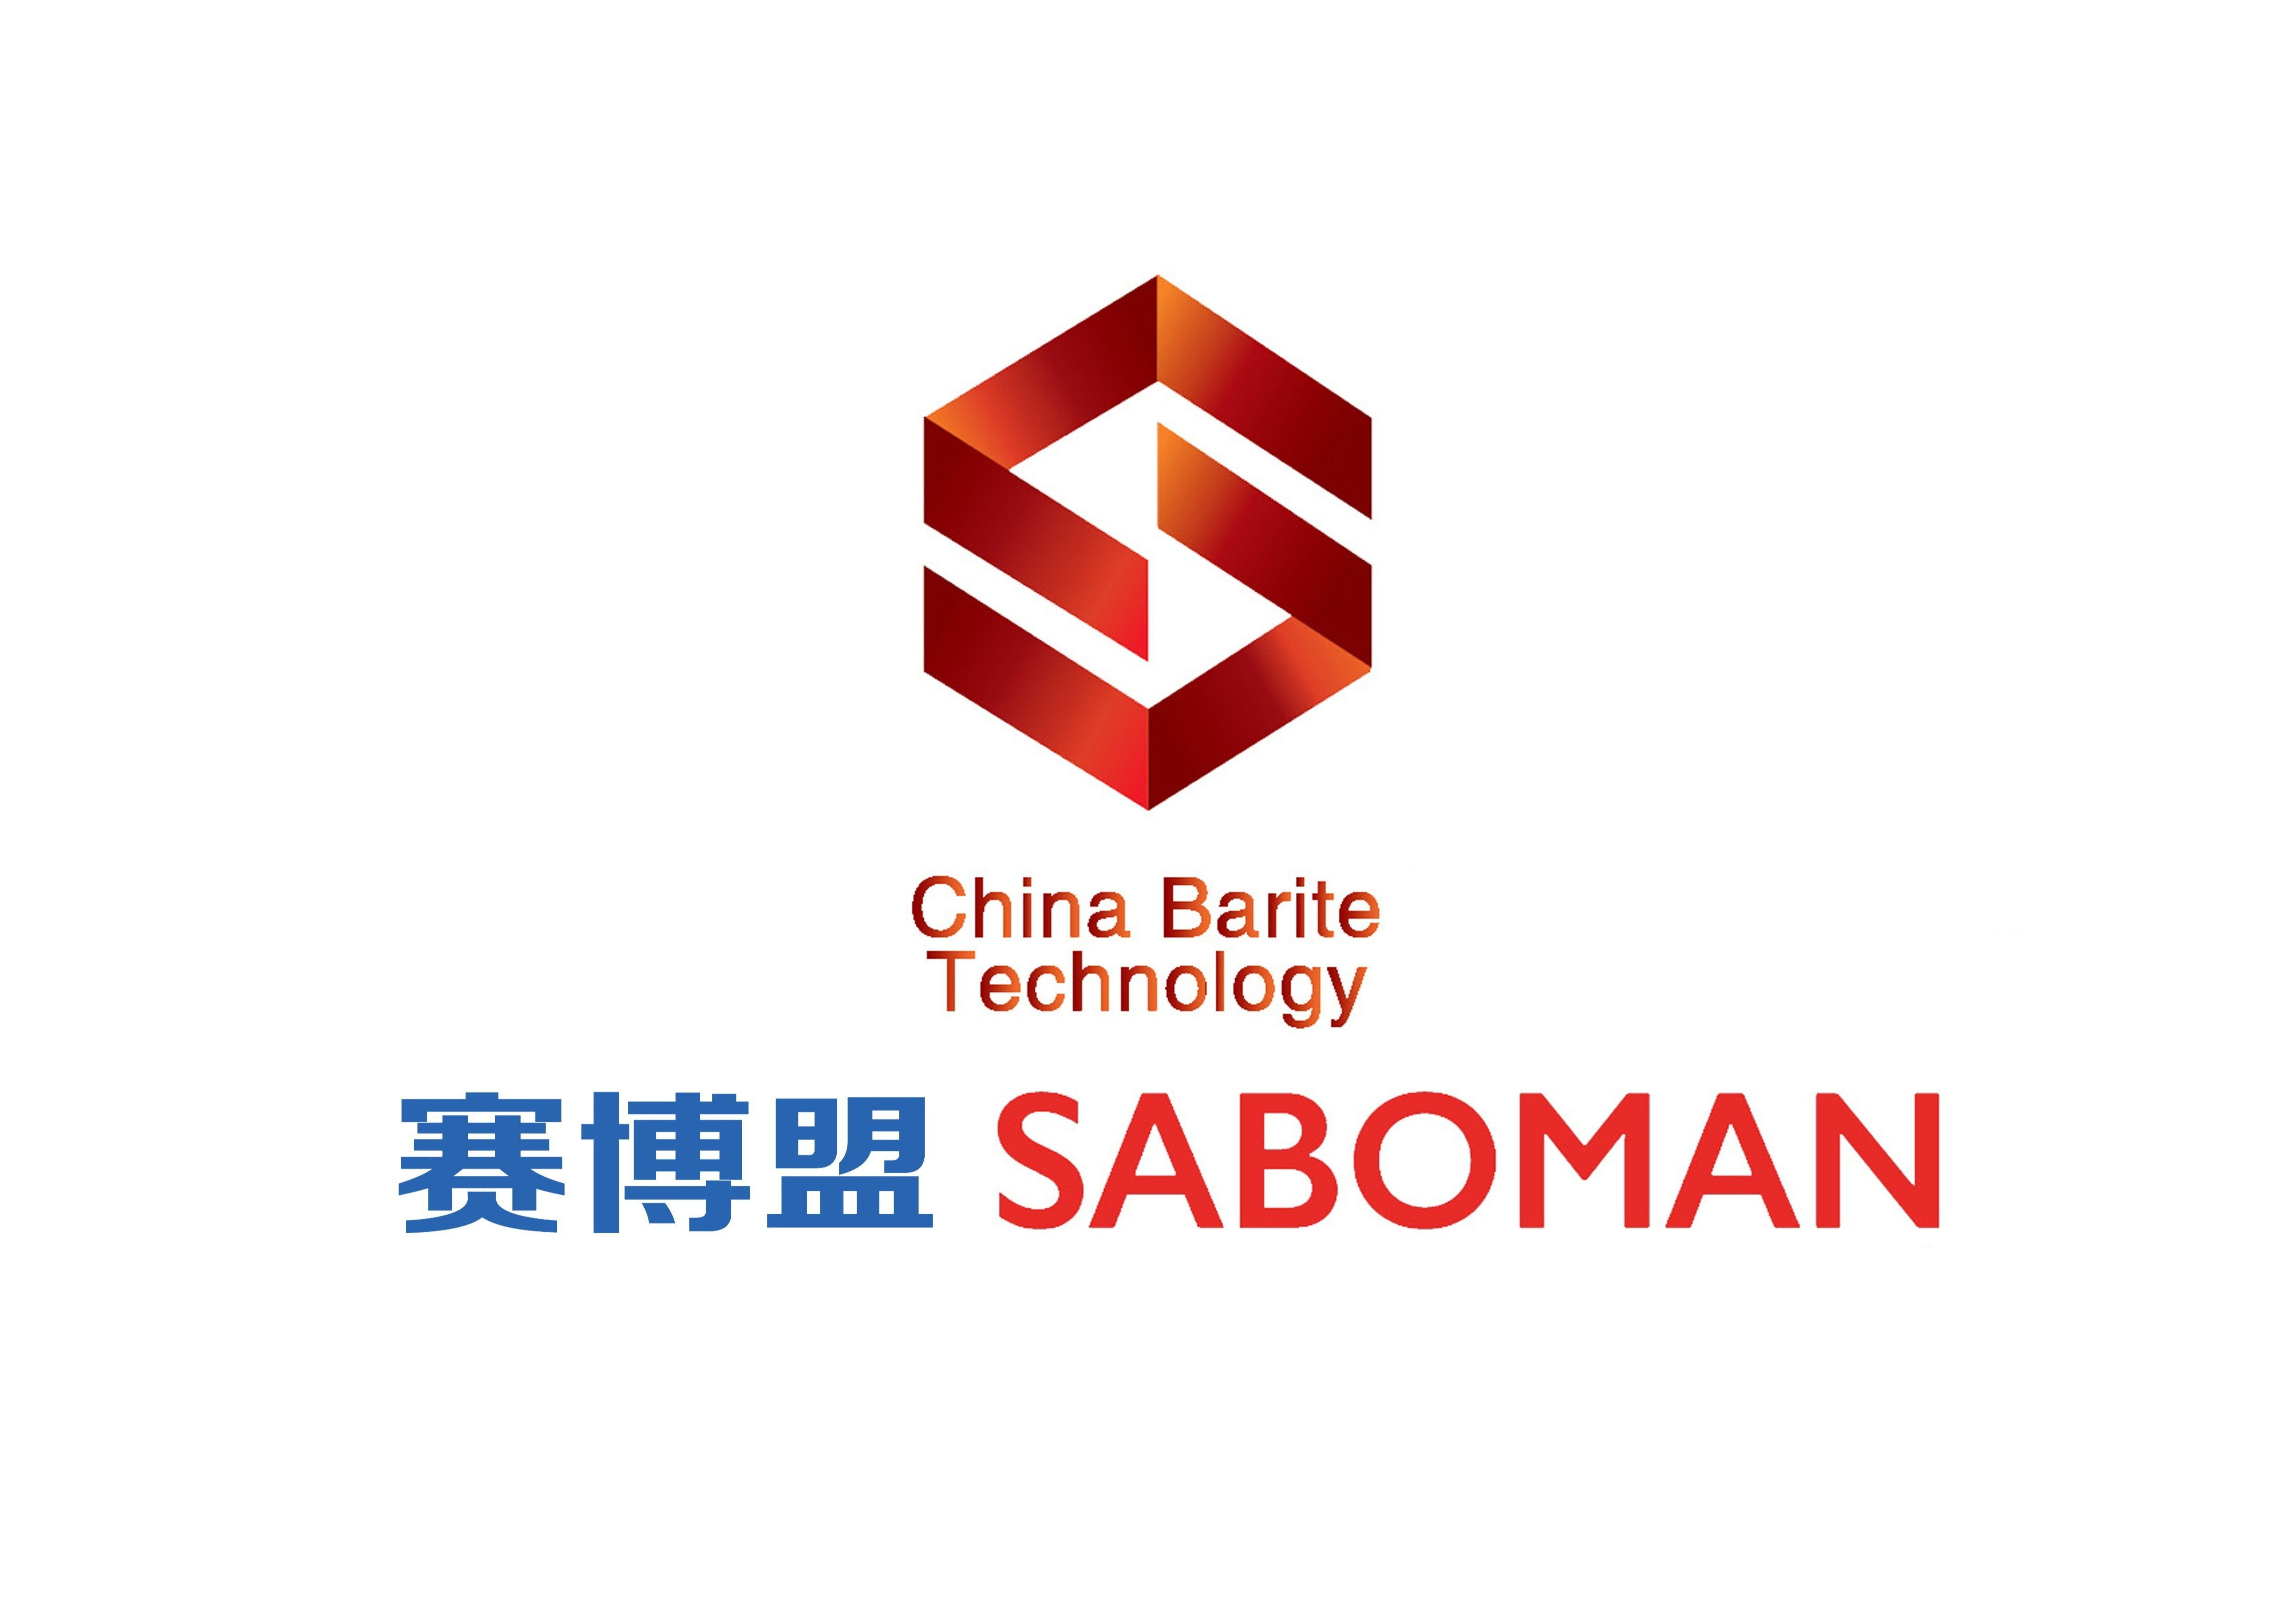 GUIZHOU SABOMAN MICRONIZED MINING CO,LTD